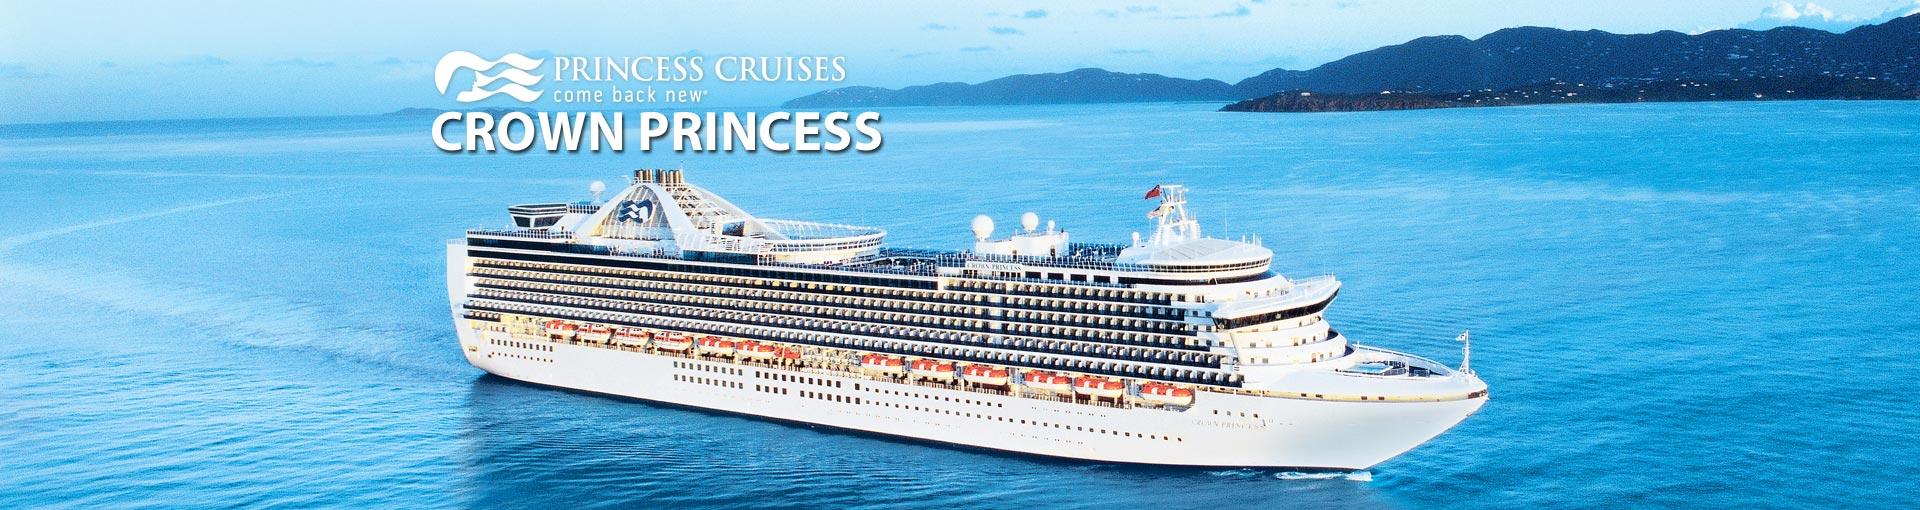 Princess Cruises Crown Cruise Ship